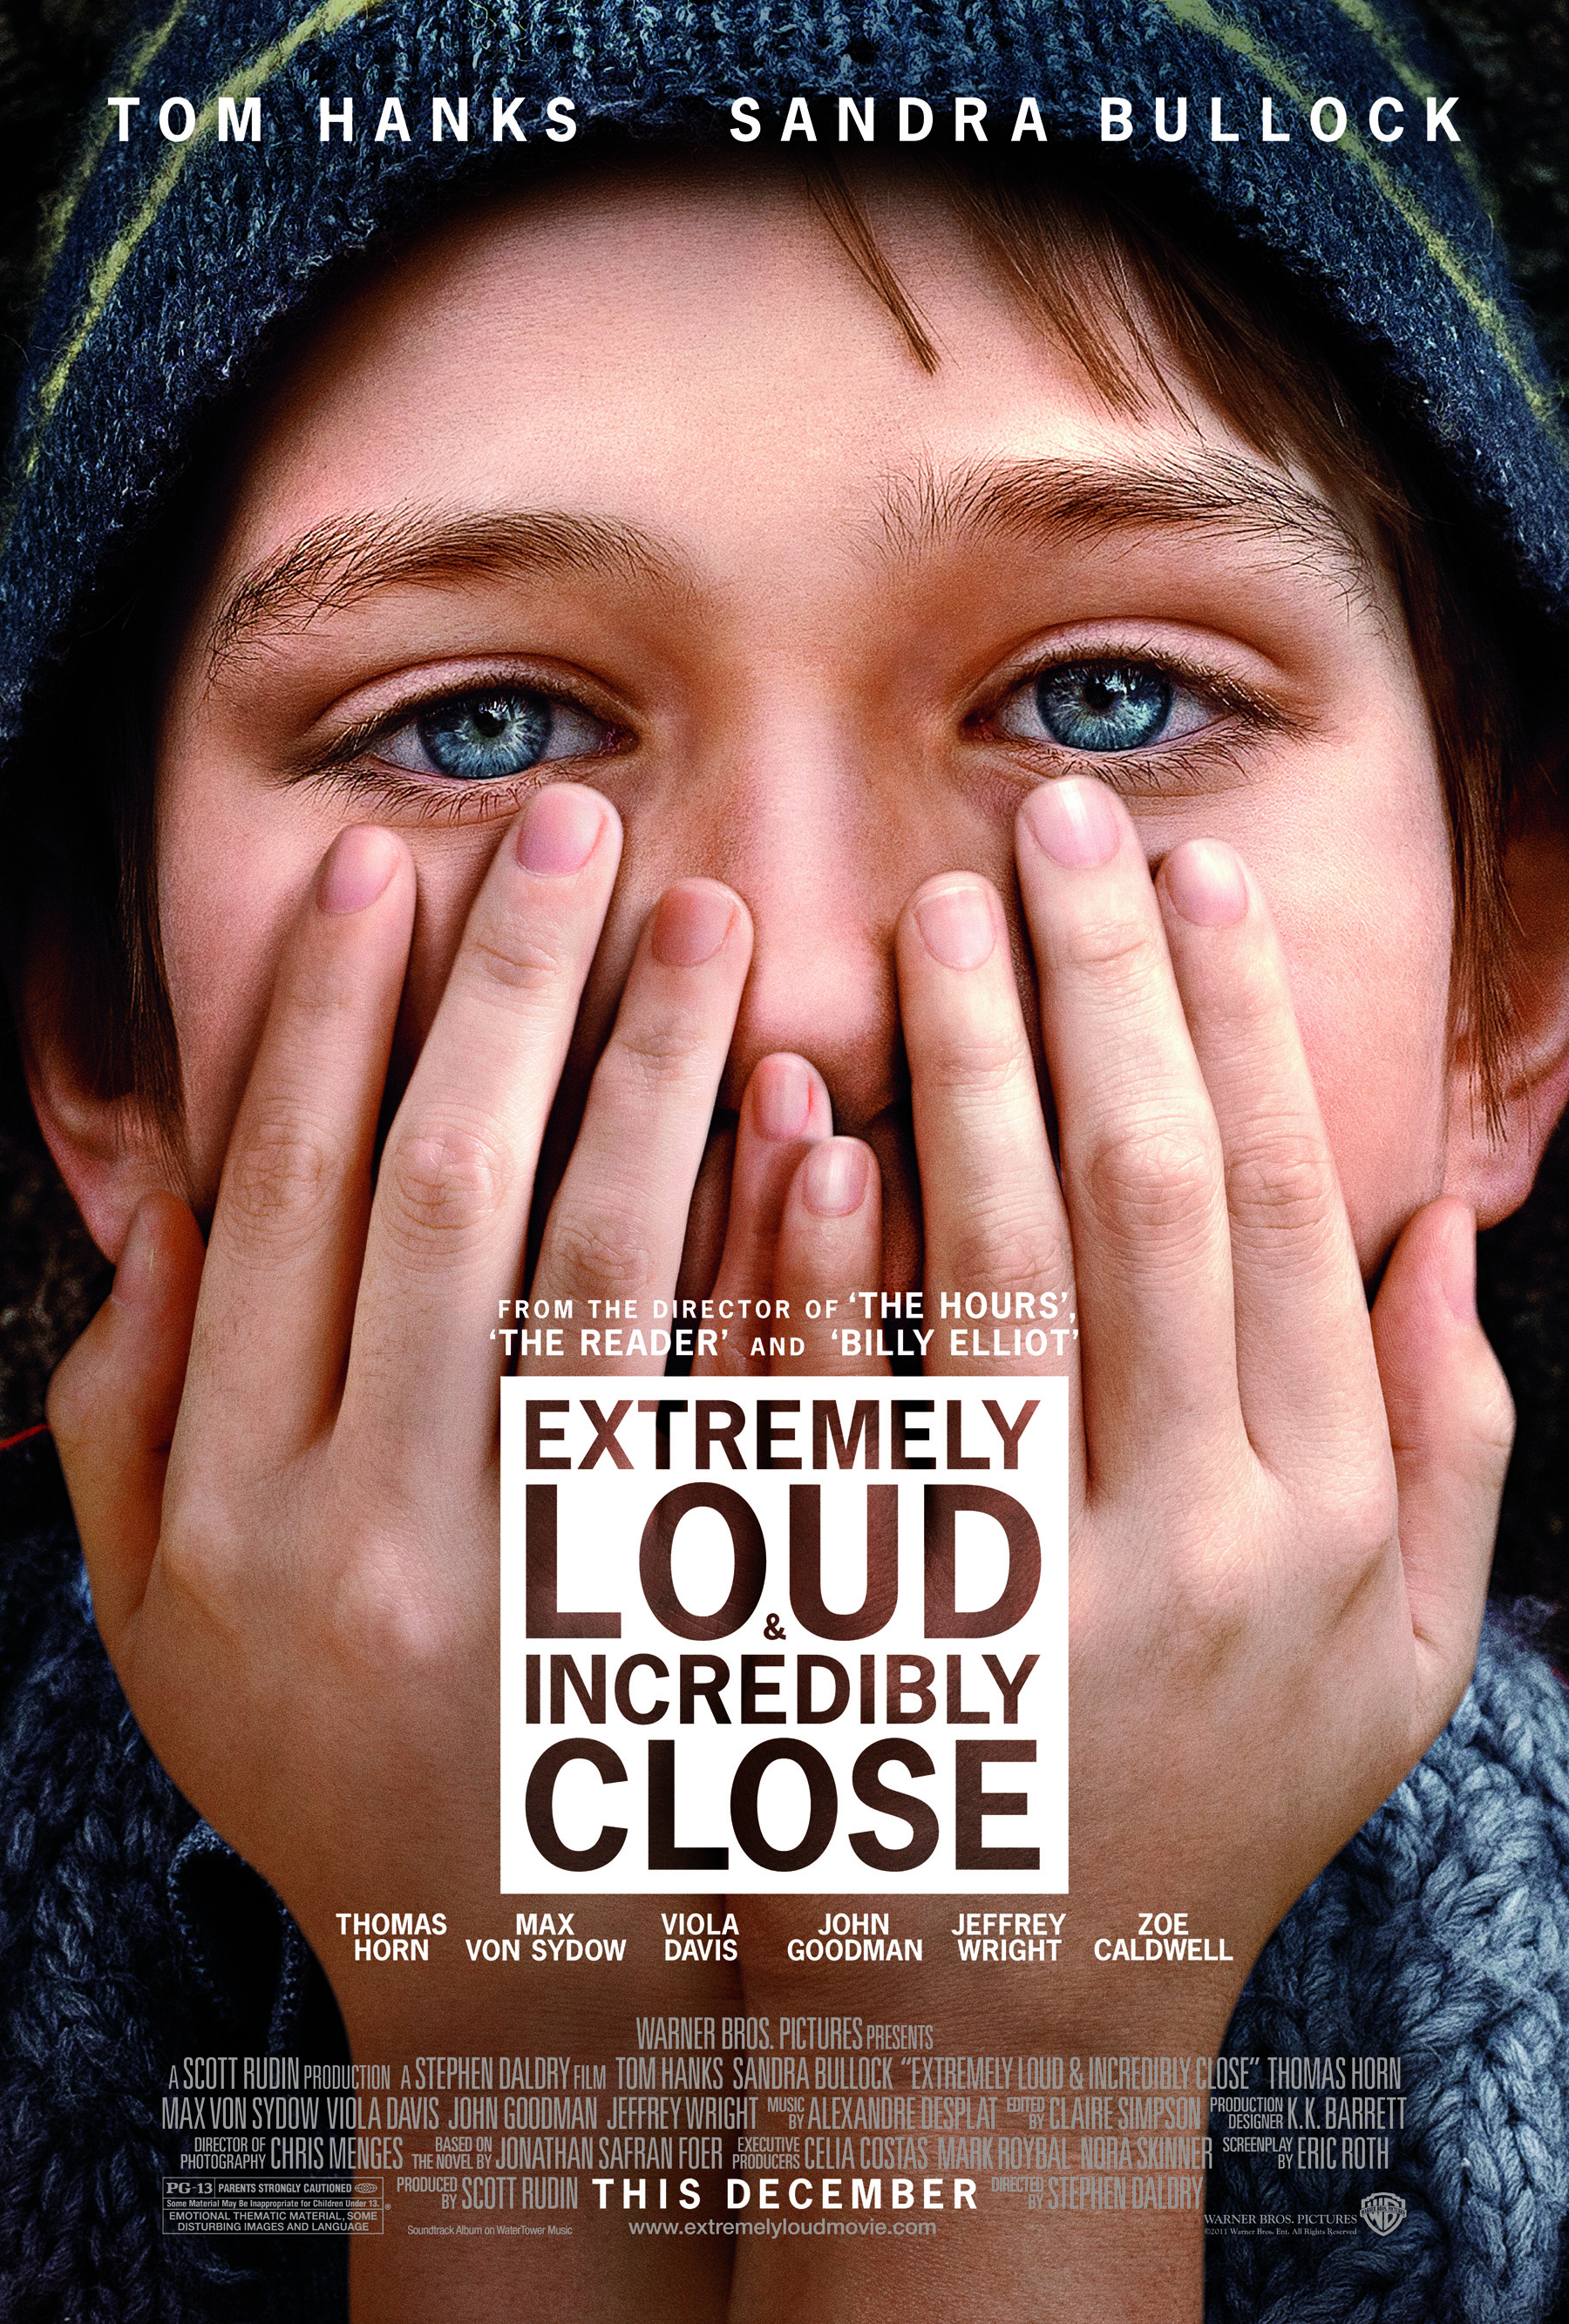 Koji film ste poslednji gledali? - Page 4 Extremely-loud-incredibly-close-movie-poster-final